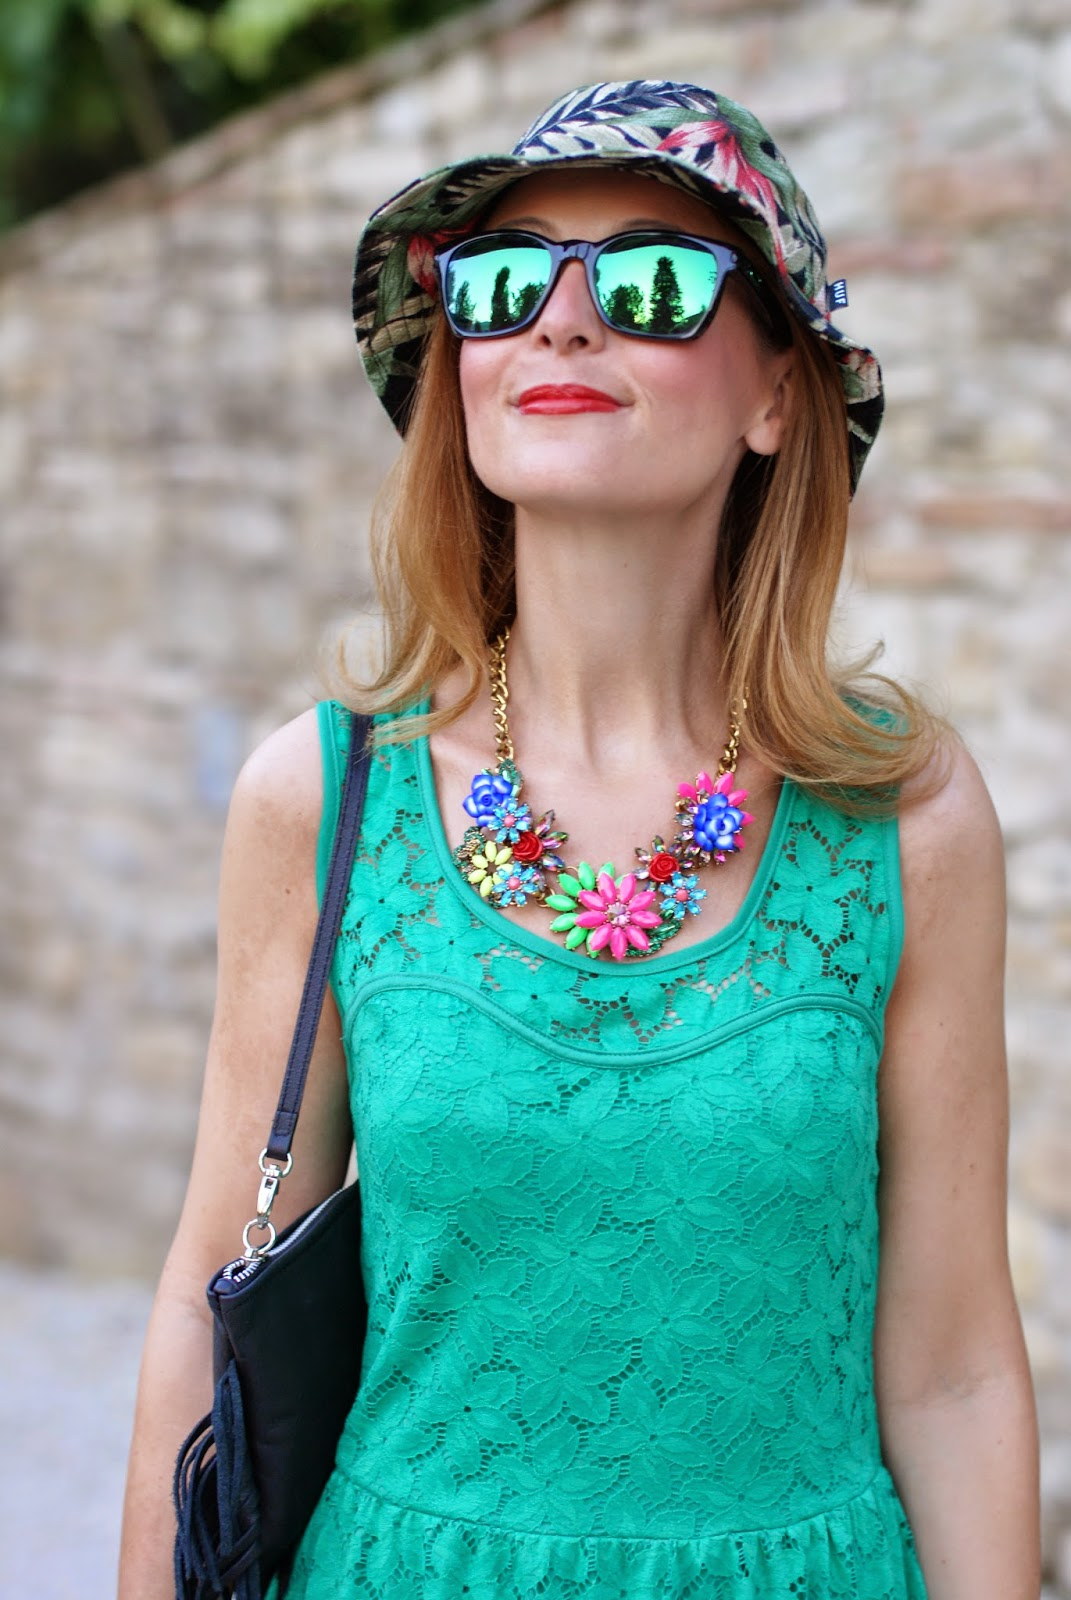 Morgan de toi green lace dress, no brand flowers necklace, fringed bag, tropical bob hat, oakley mirrored green sunglasses, Fashion and Cookies, fashion blogger